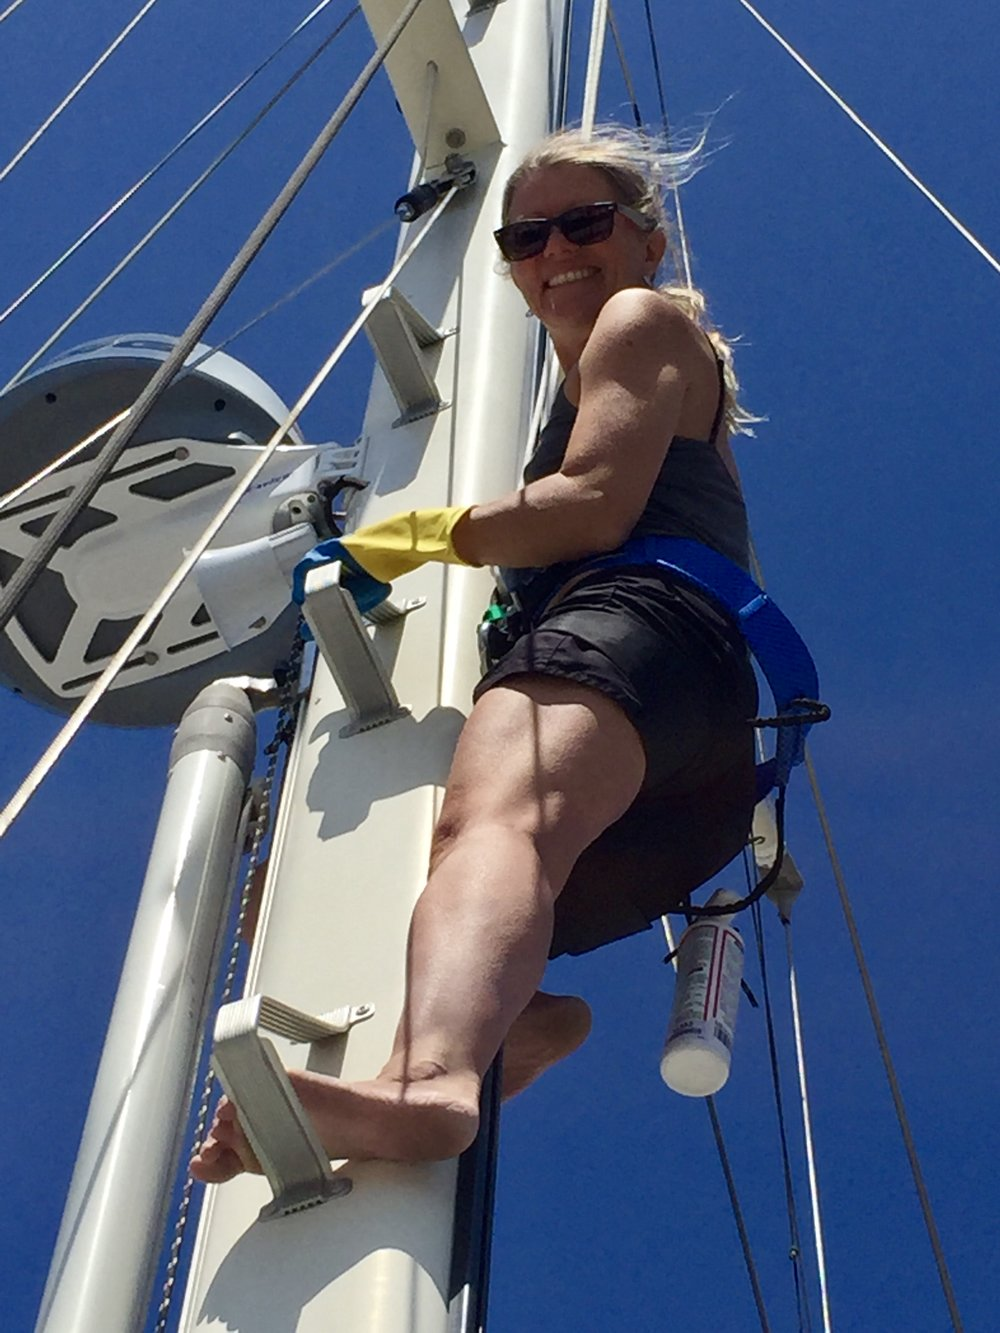 Which day did we choose to climb the mast? Why, the day it was gusting 30 in the harbor, of course. Thank you, mast steps.